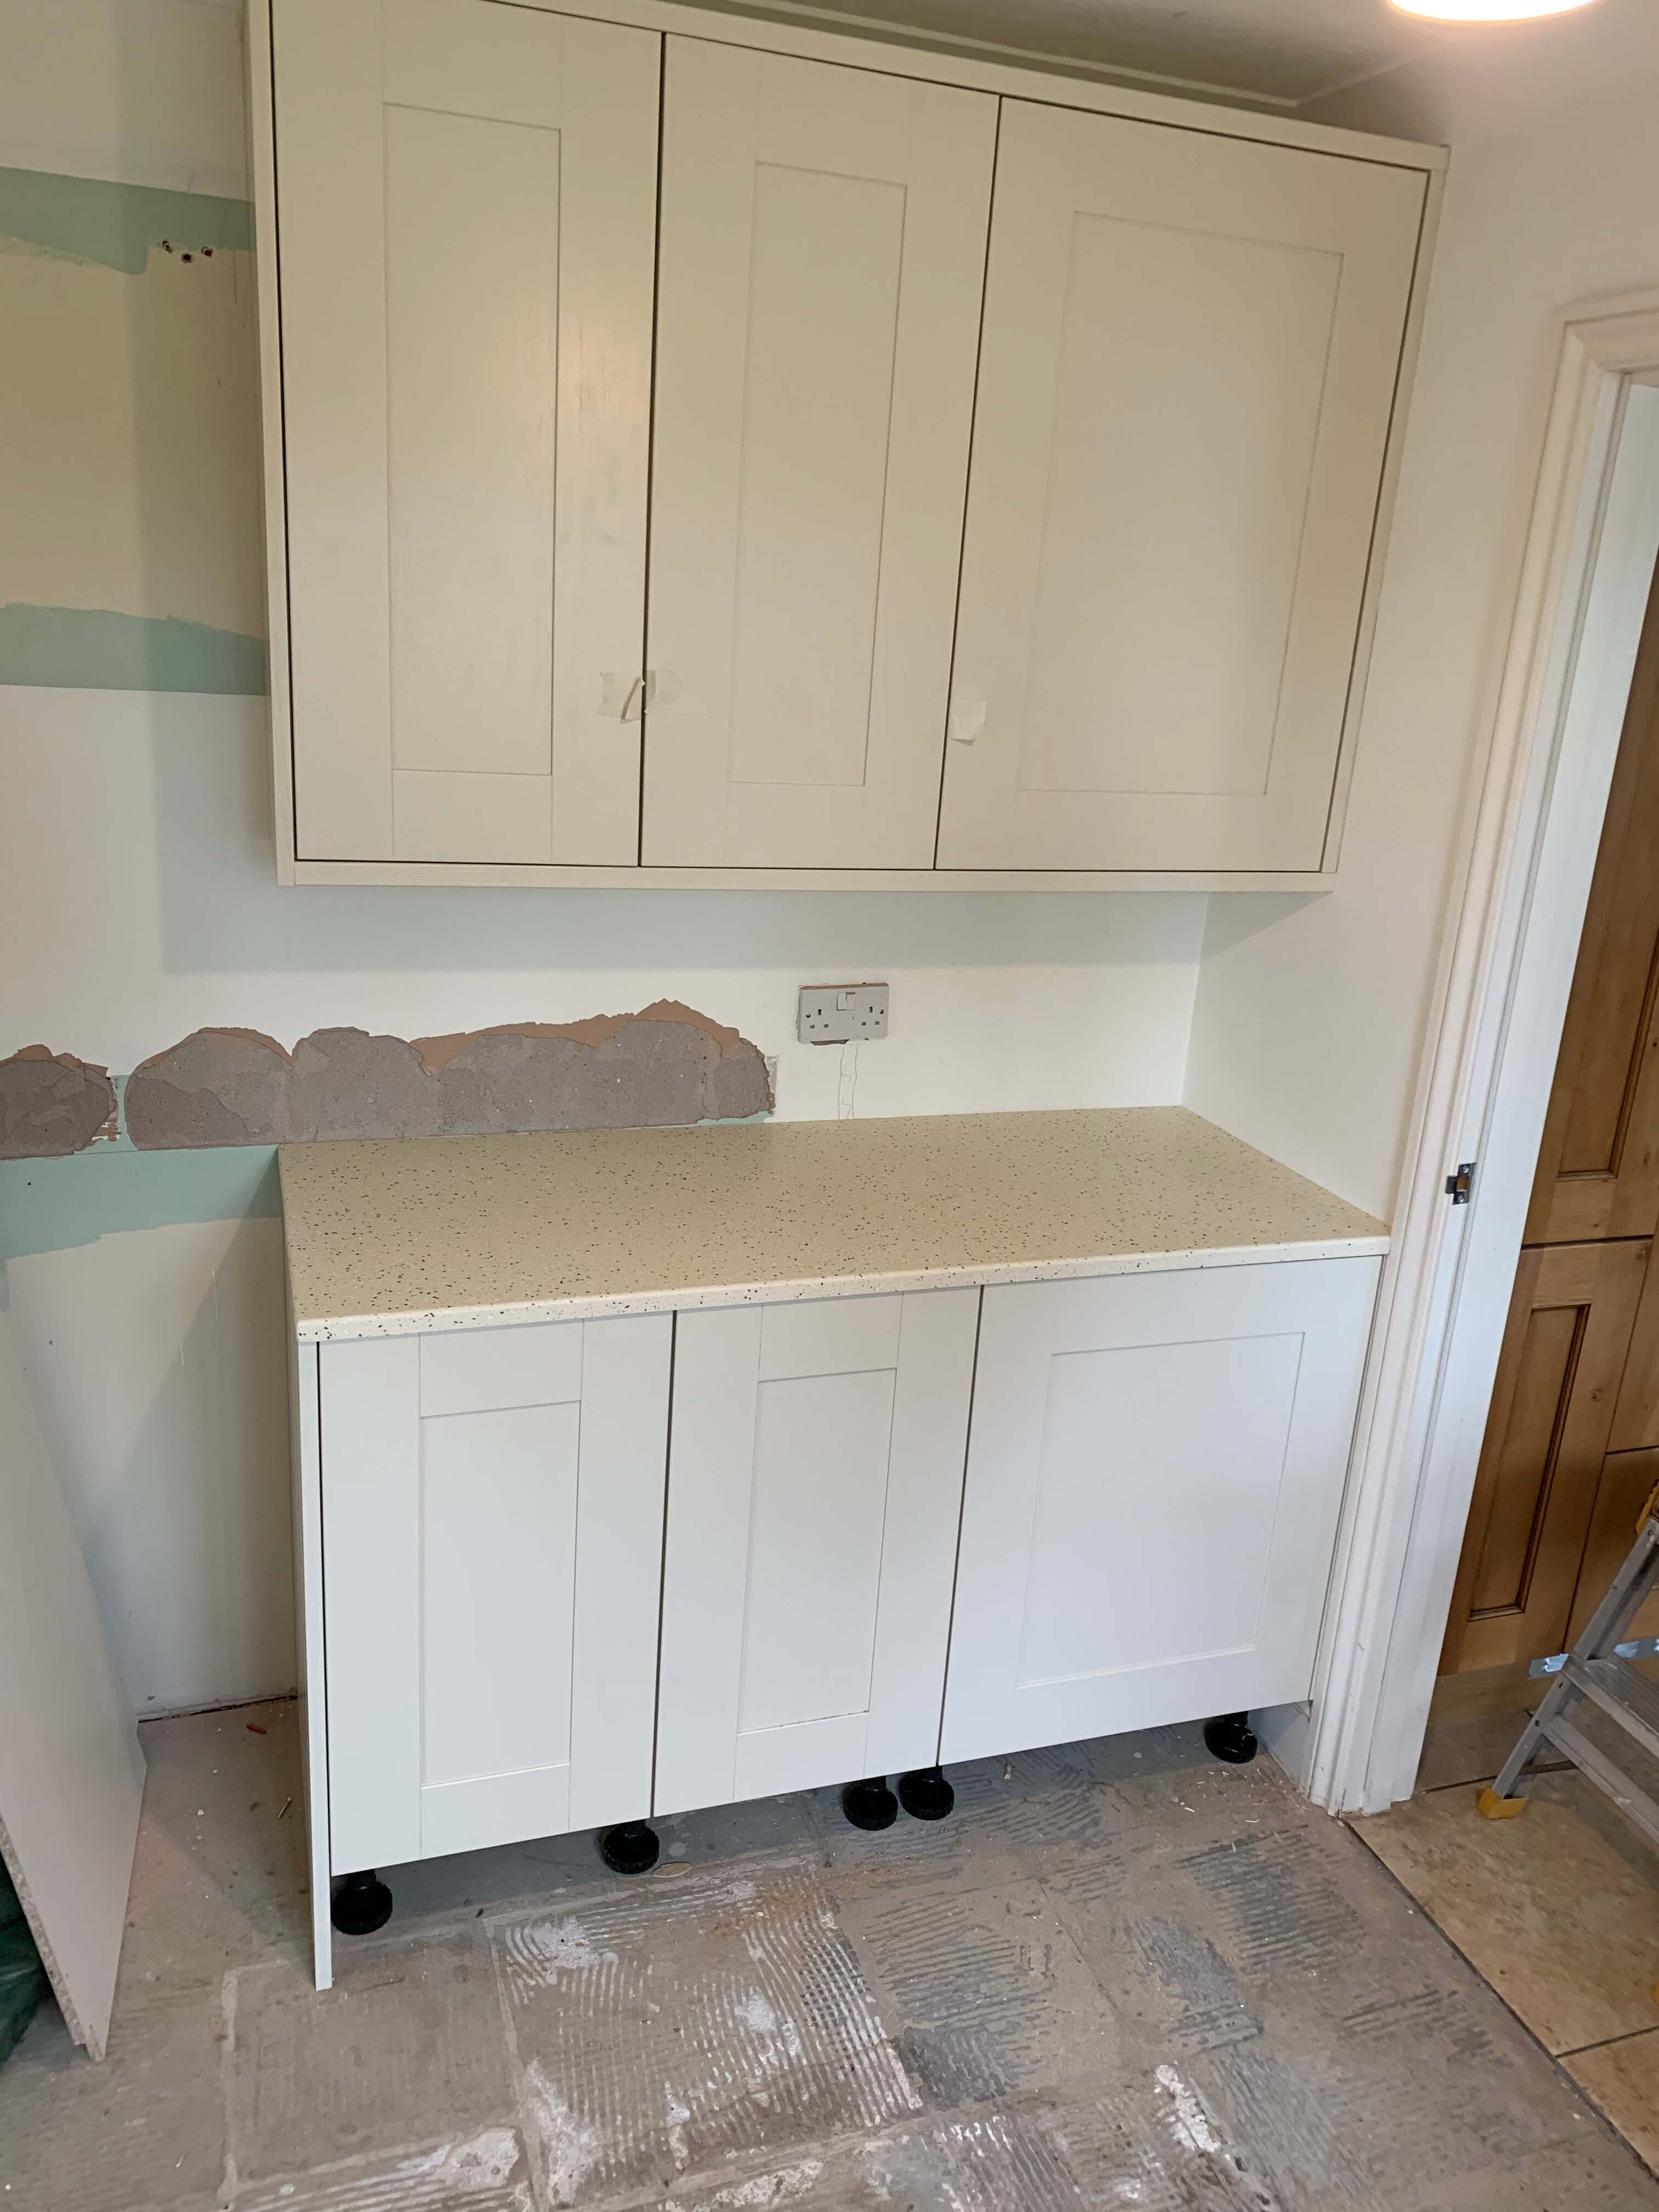 Finished utility units and worktop